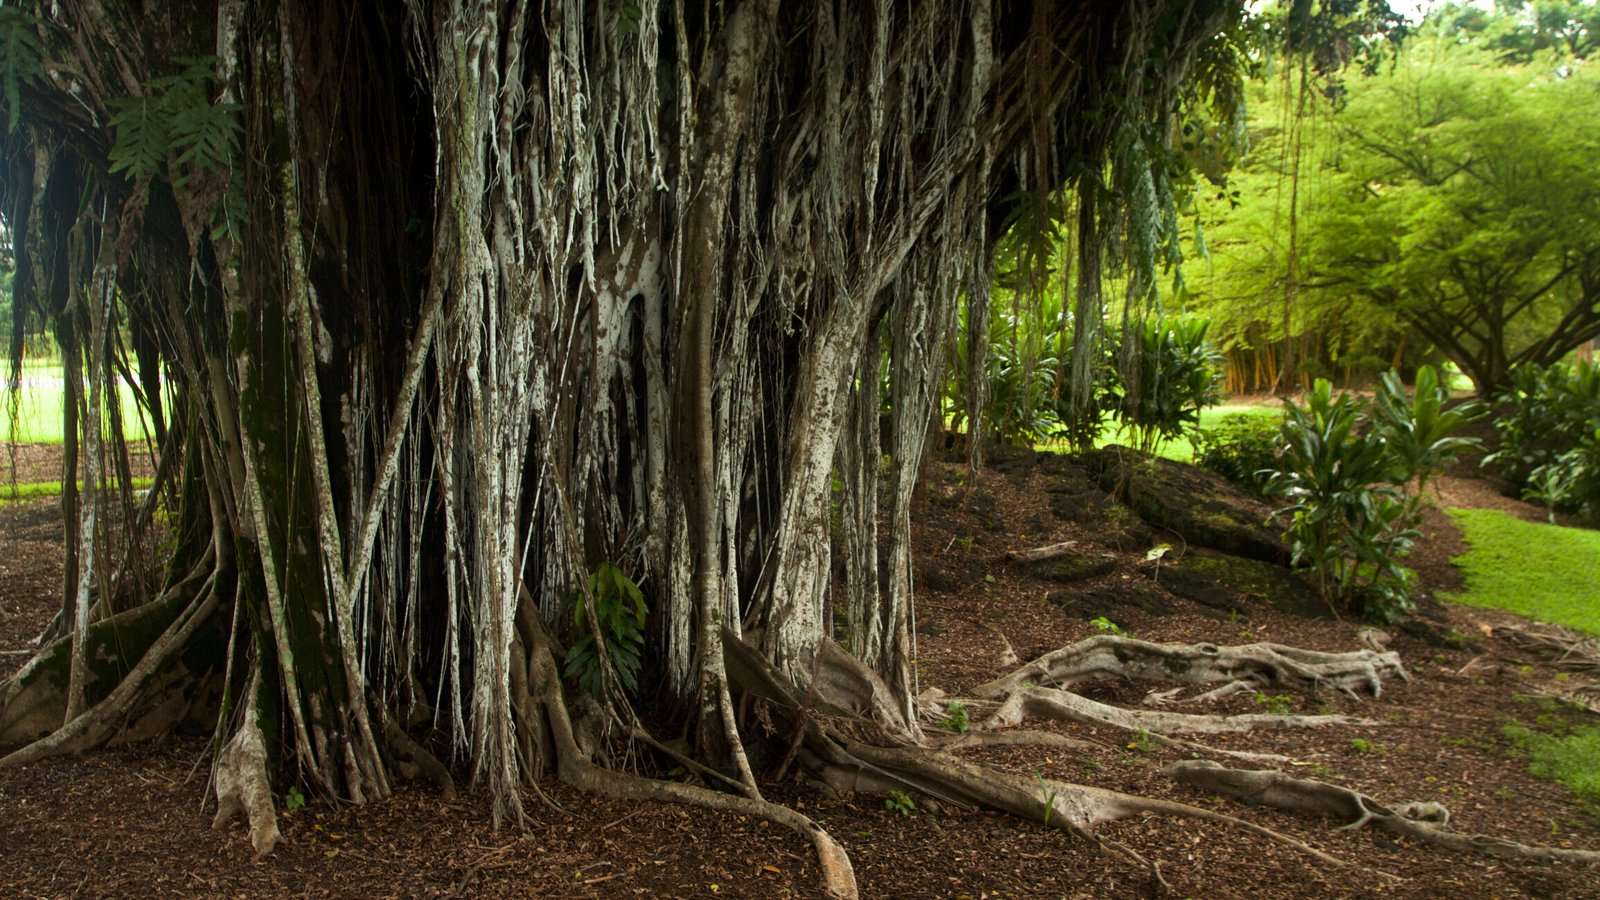 Liliuokalani Park and Gardens Pictures: View Photos & Images of ...